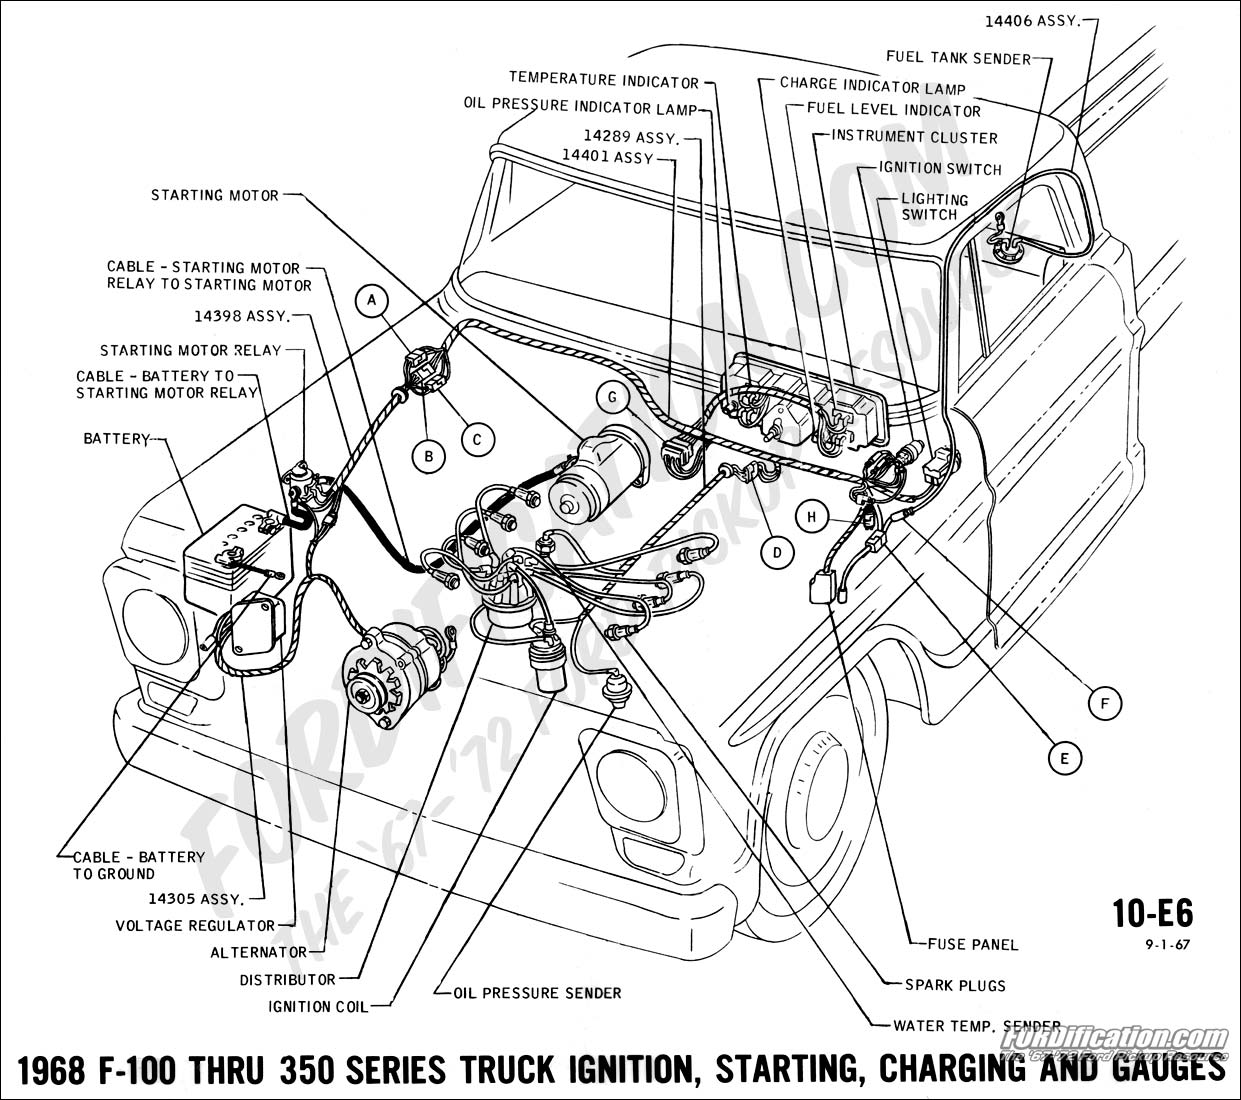 Ford Truck Technical Drawings And Schematics Section H Wiring Externally Regulated Alternator Diagram 1968 F 100 Thru 350 Ignition Starting Charging Gauges